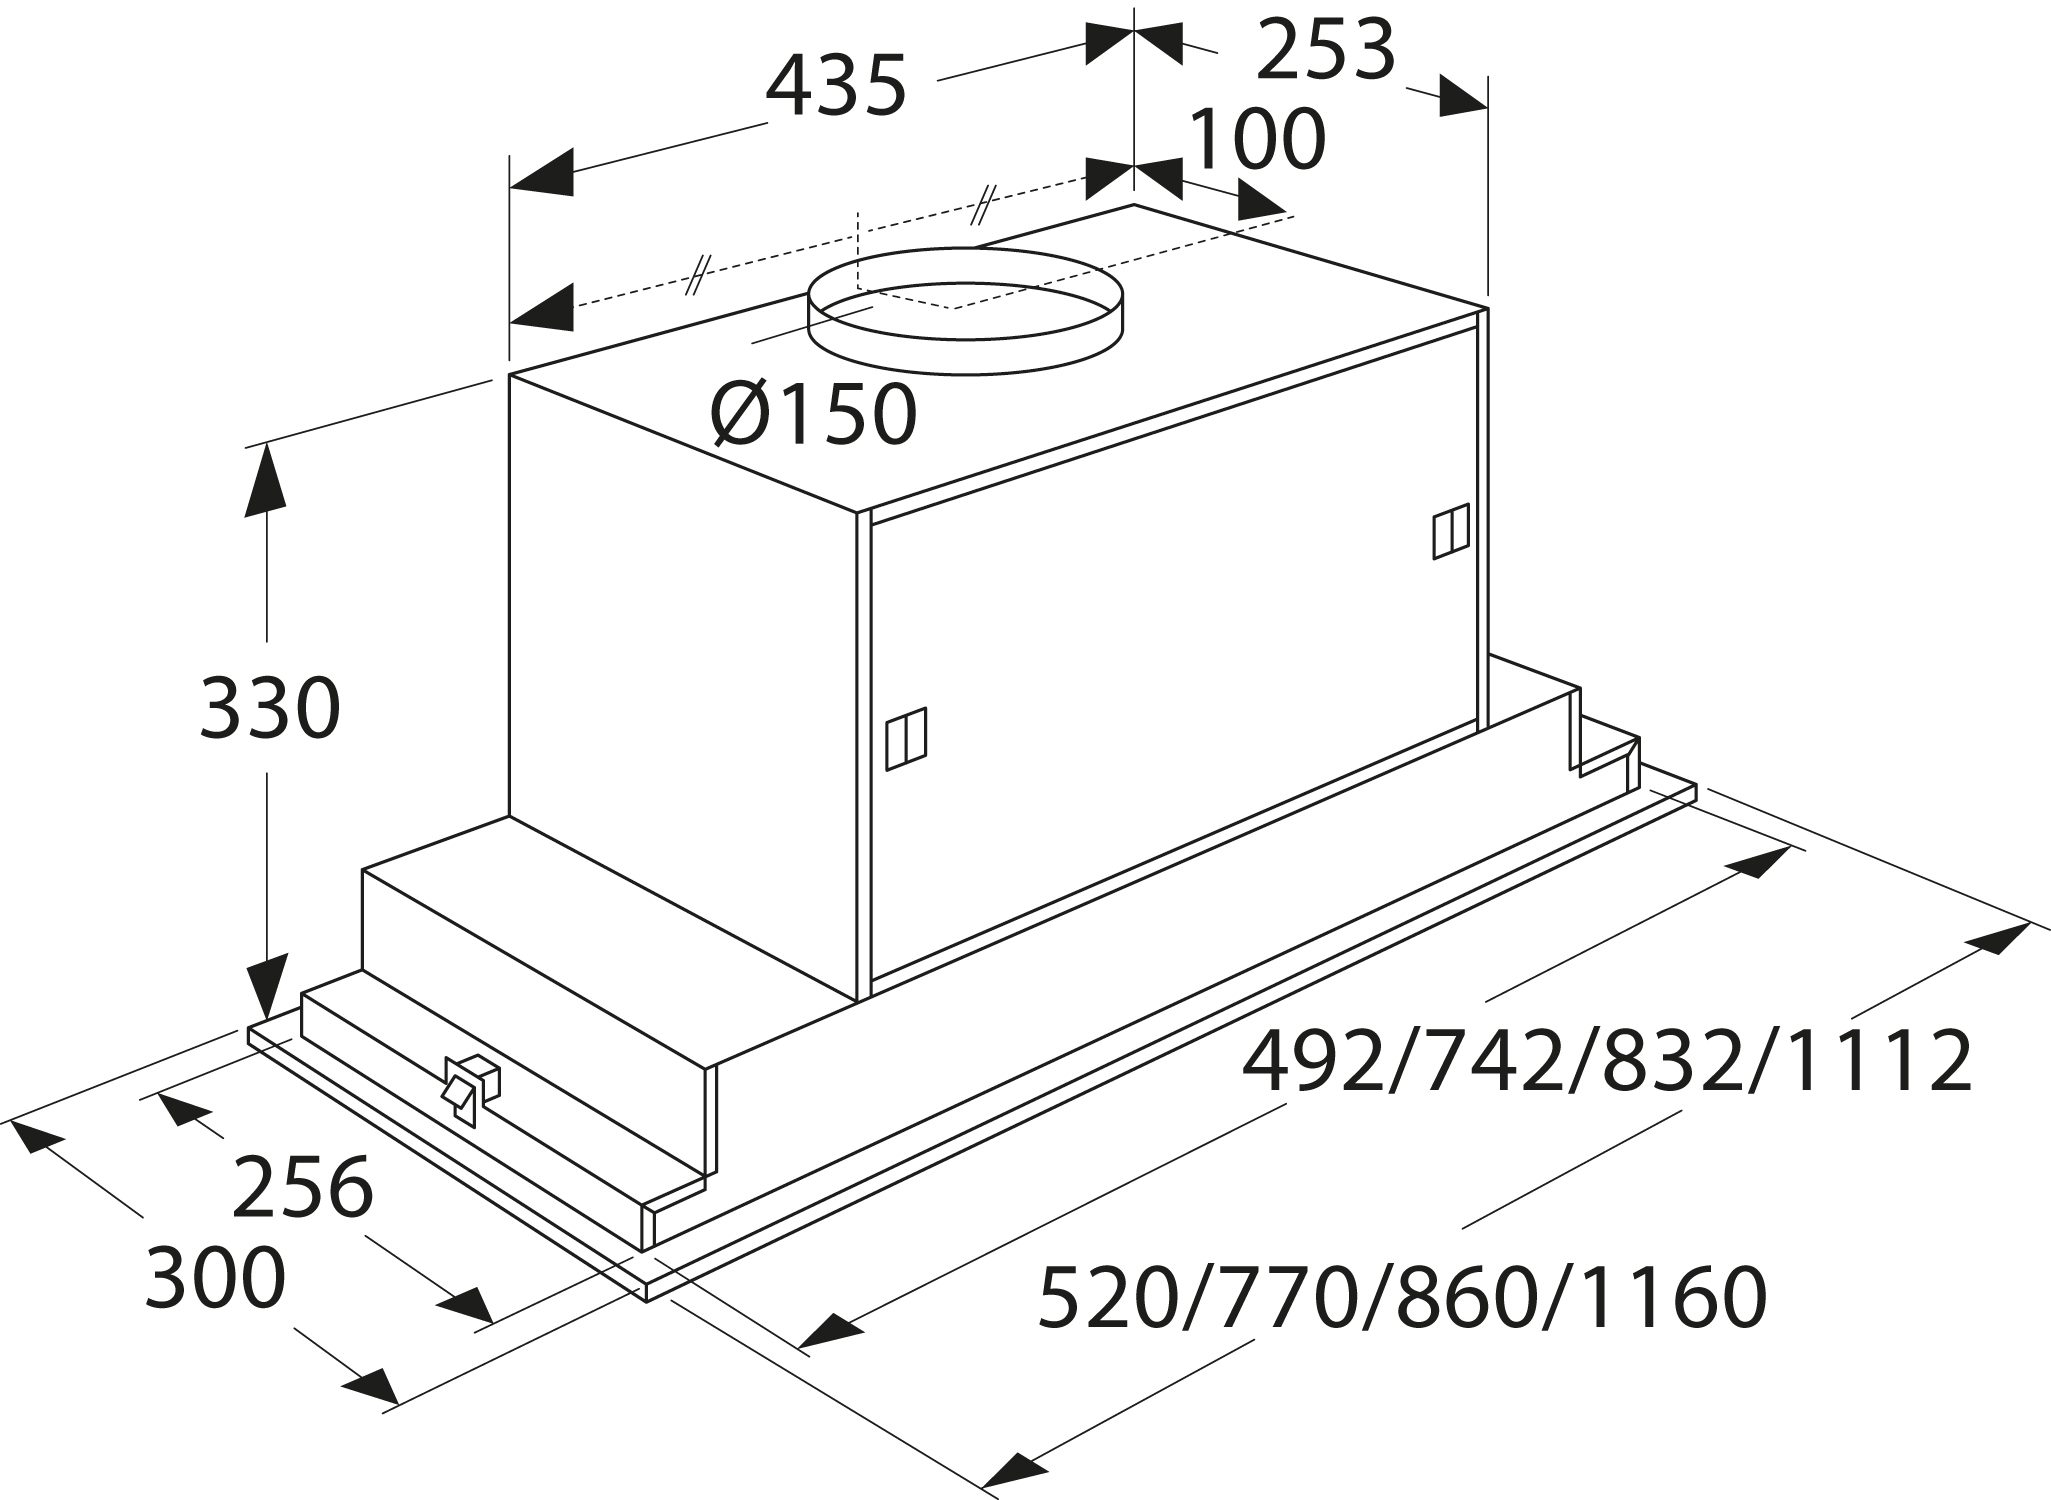 Asko Concealed Rangehood 52cm In Stainless Steel At 1950 Gas Stove Wiring Diagram User Manual Product Specifications